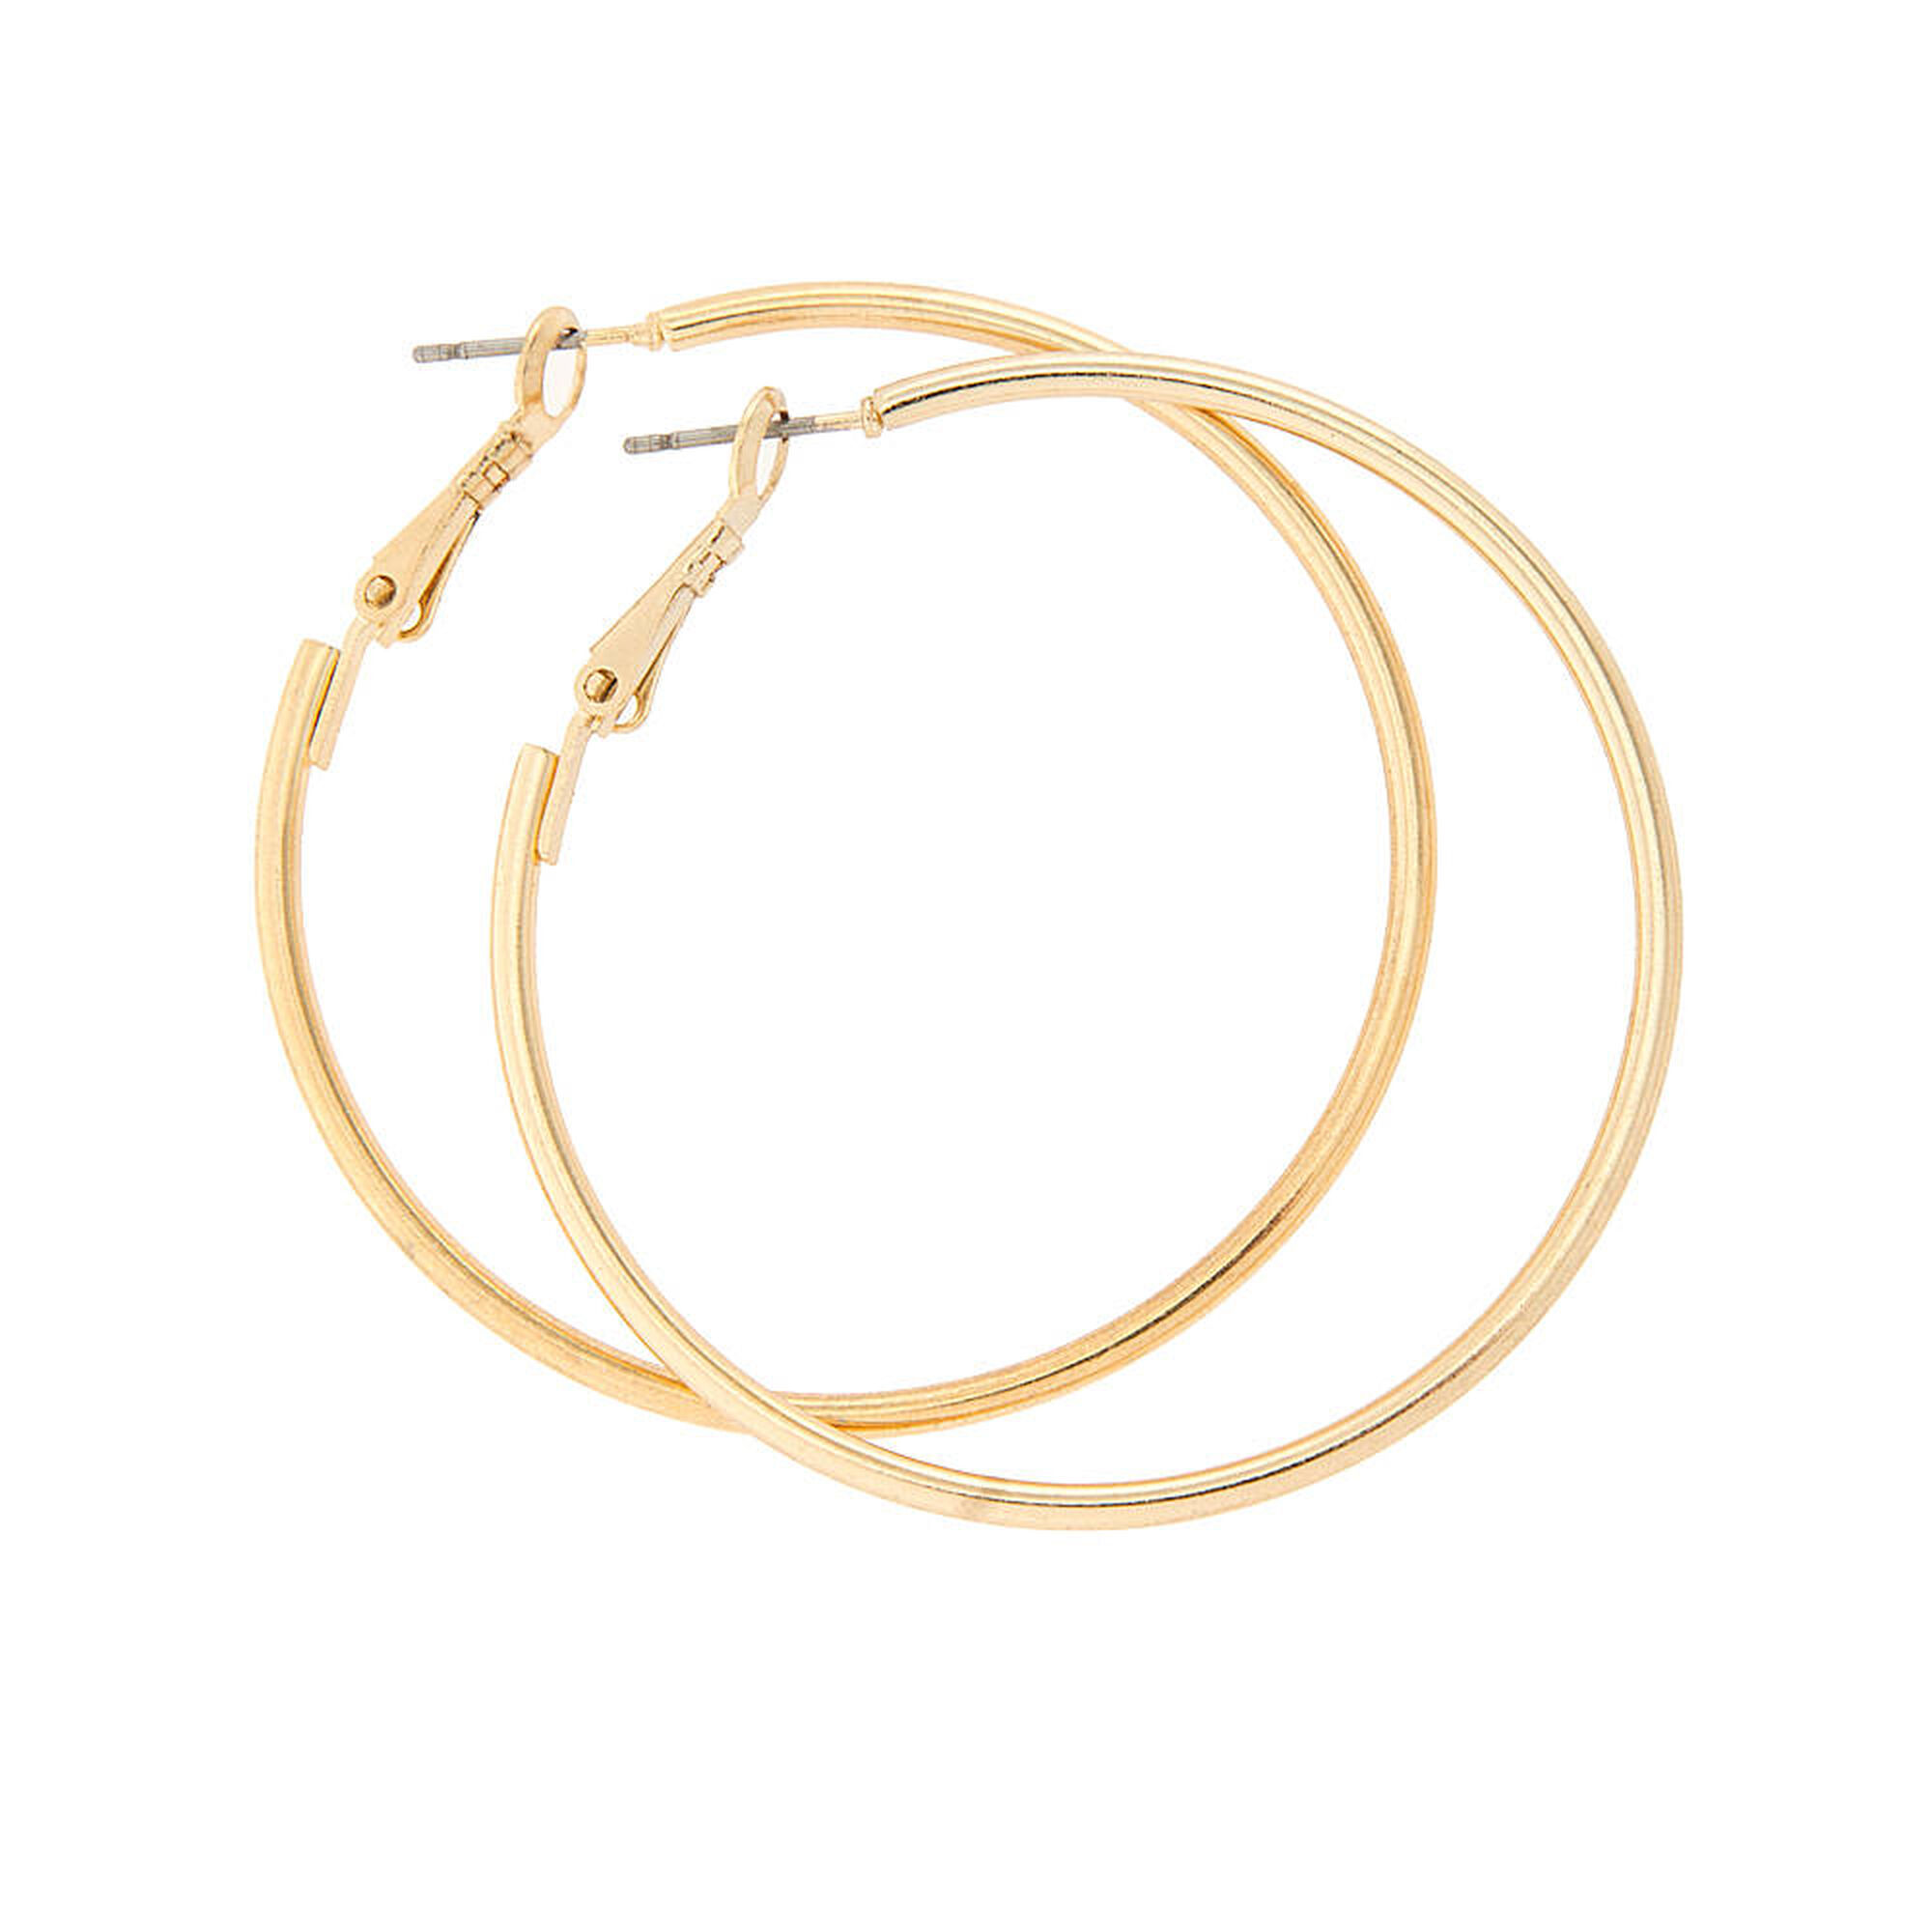 med earrings products available sade hoop medium hood sizes melody ehsani in hoops